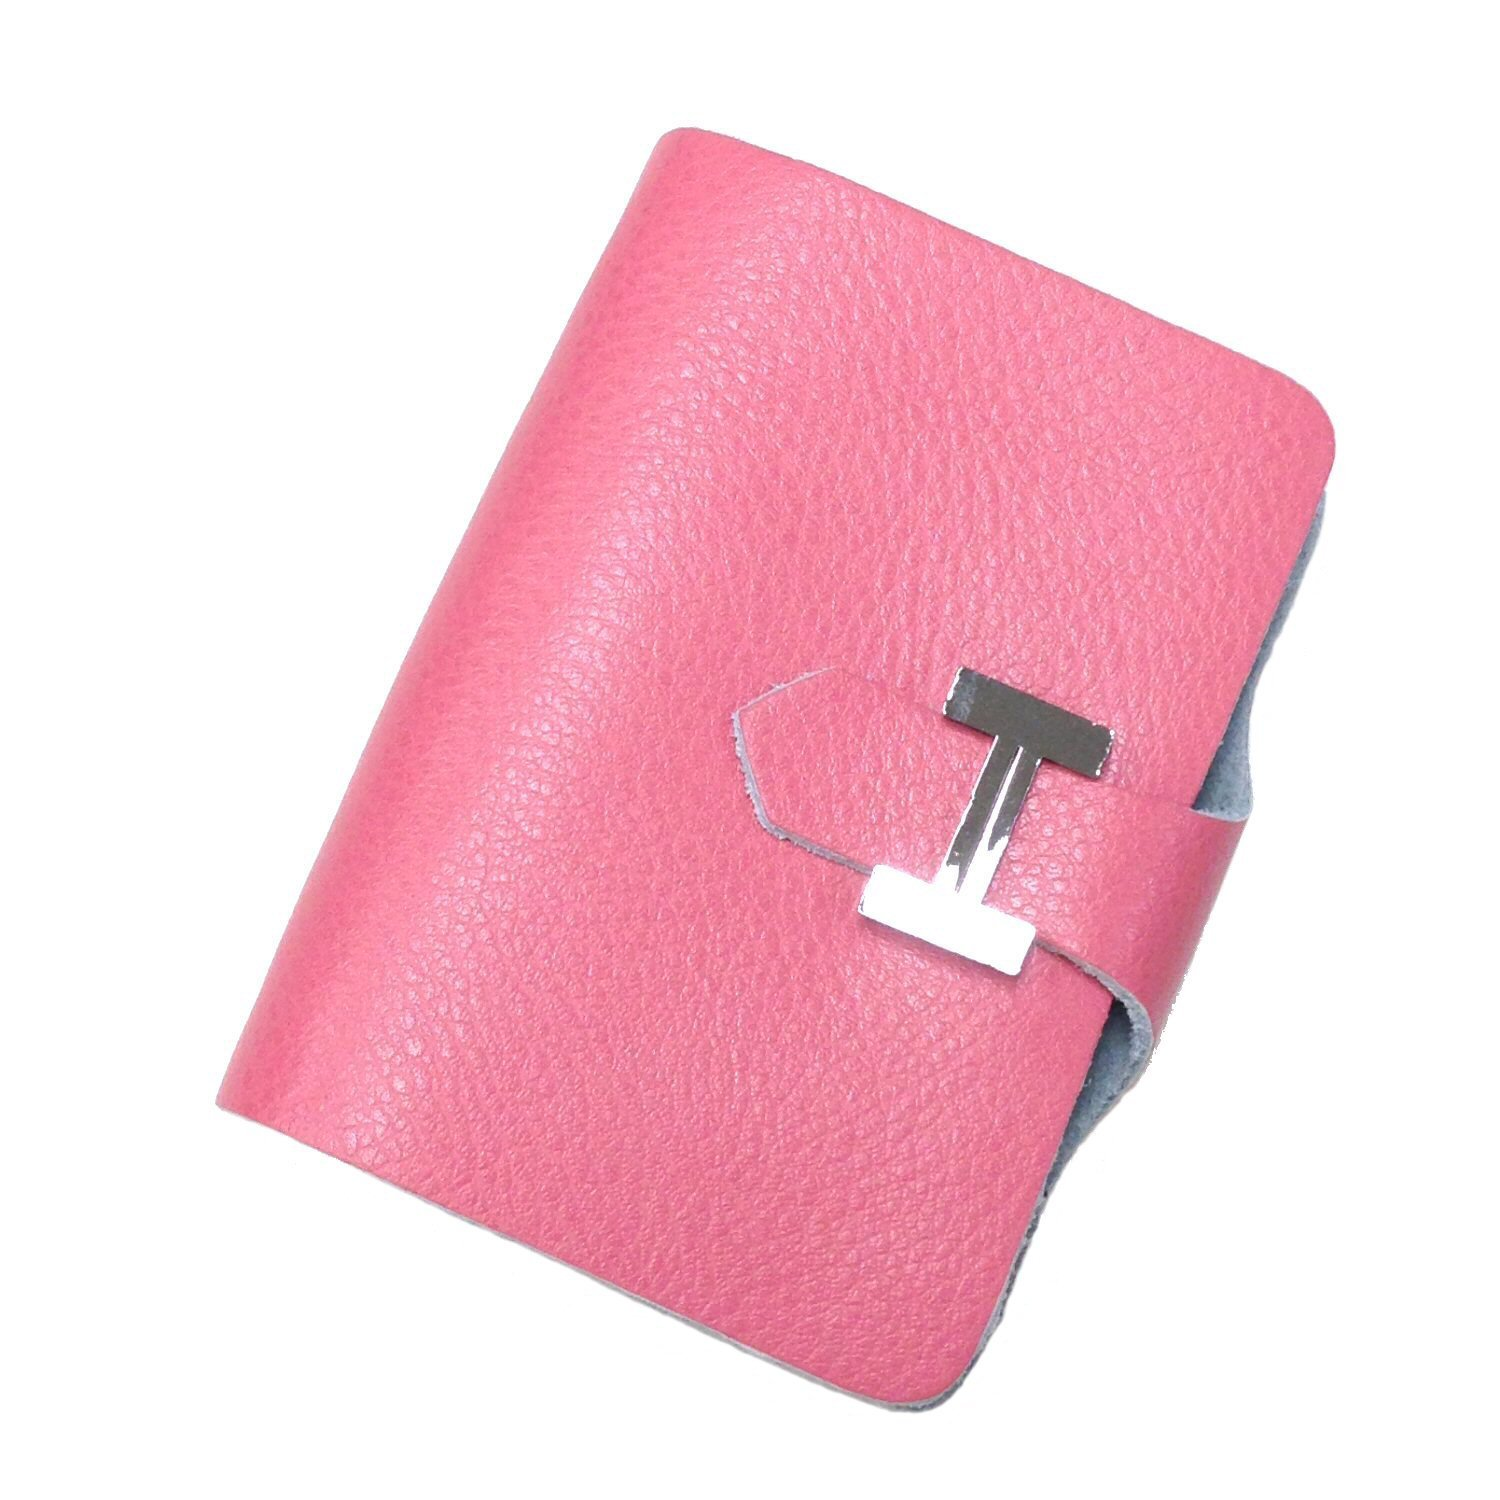 Tapp Collections ACCESSORY レディース  1/ H-Buckle / Pink B00IX5LB0W